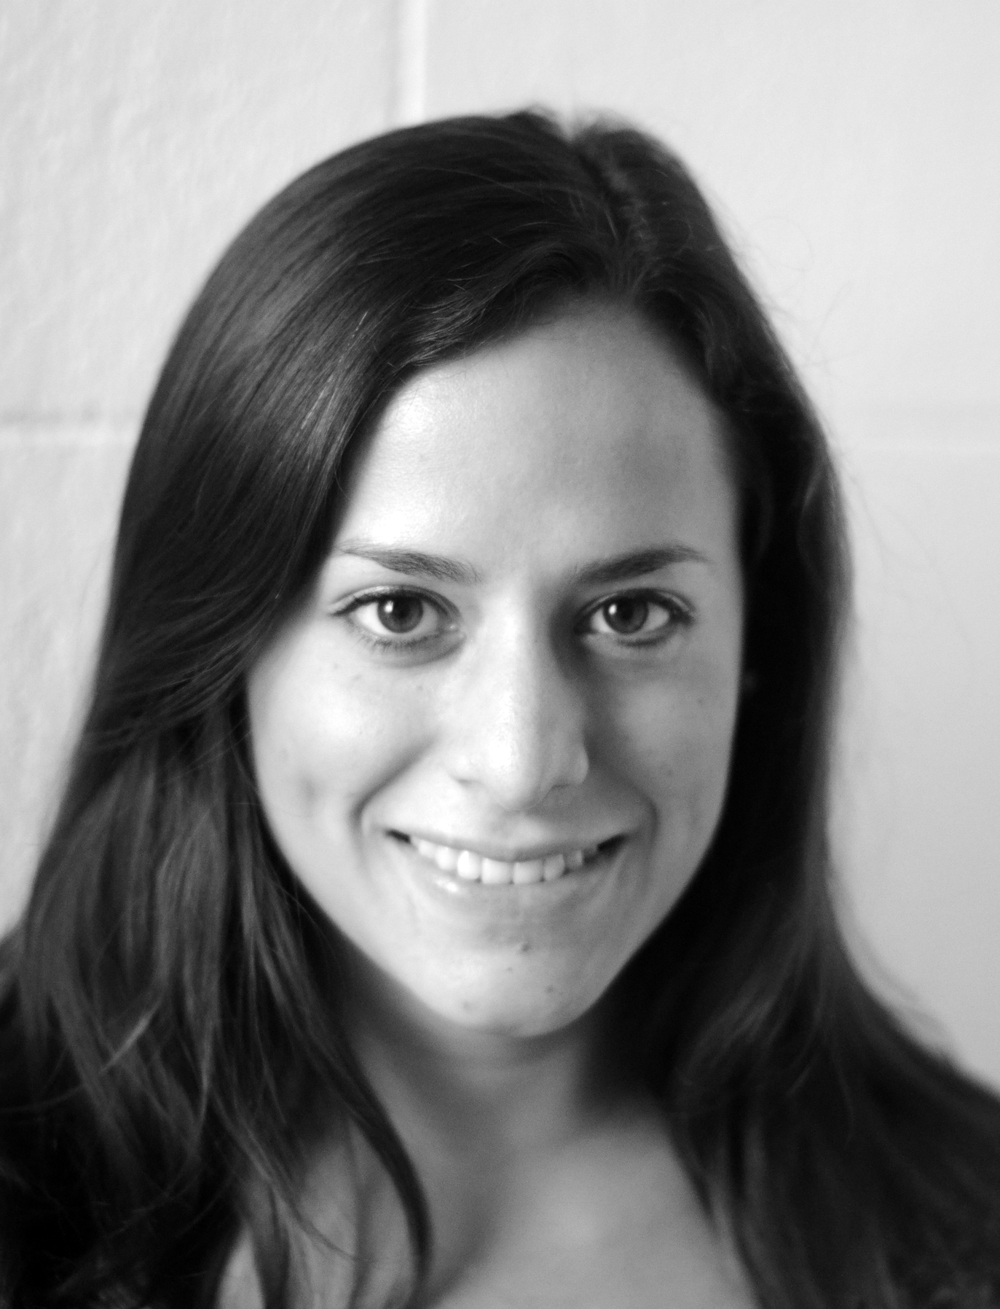 Ana Paola López - Project Manager